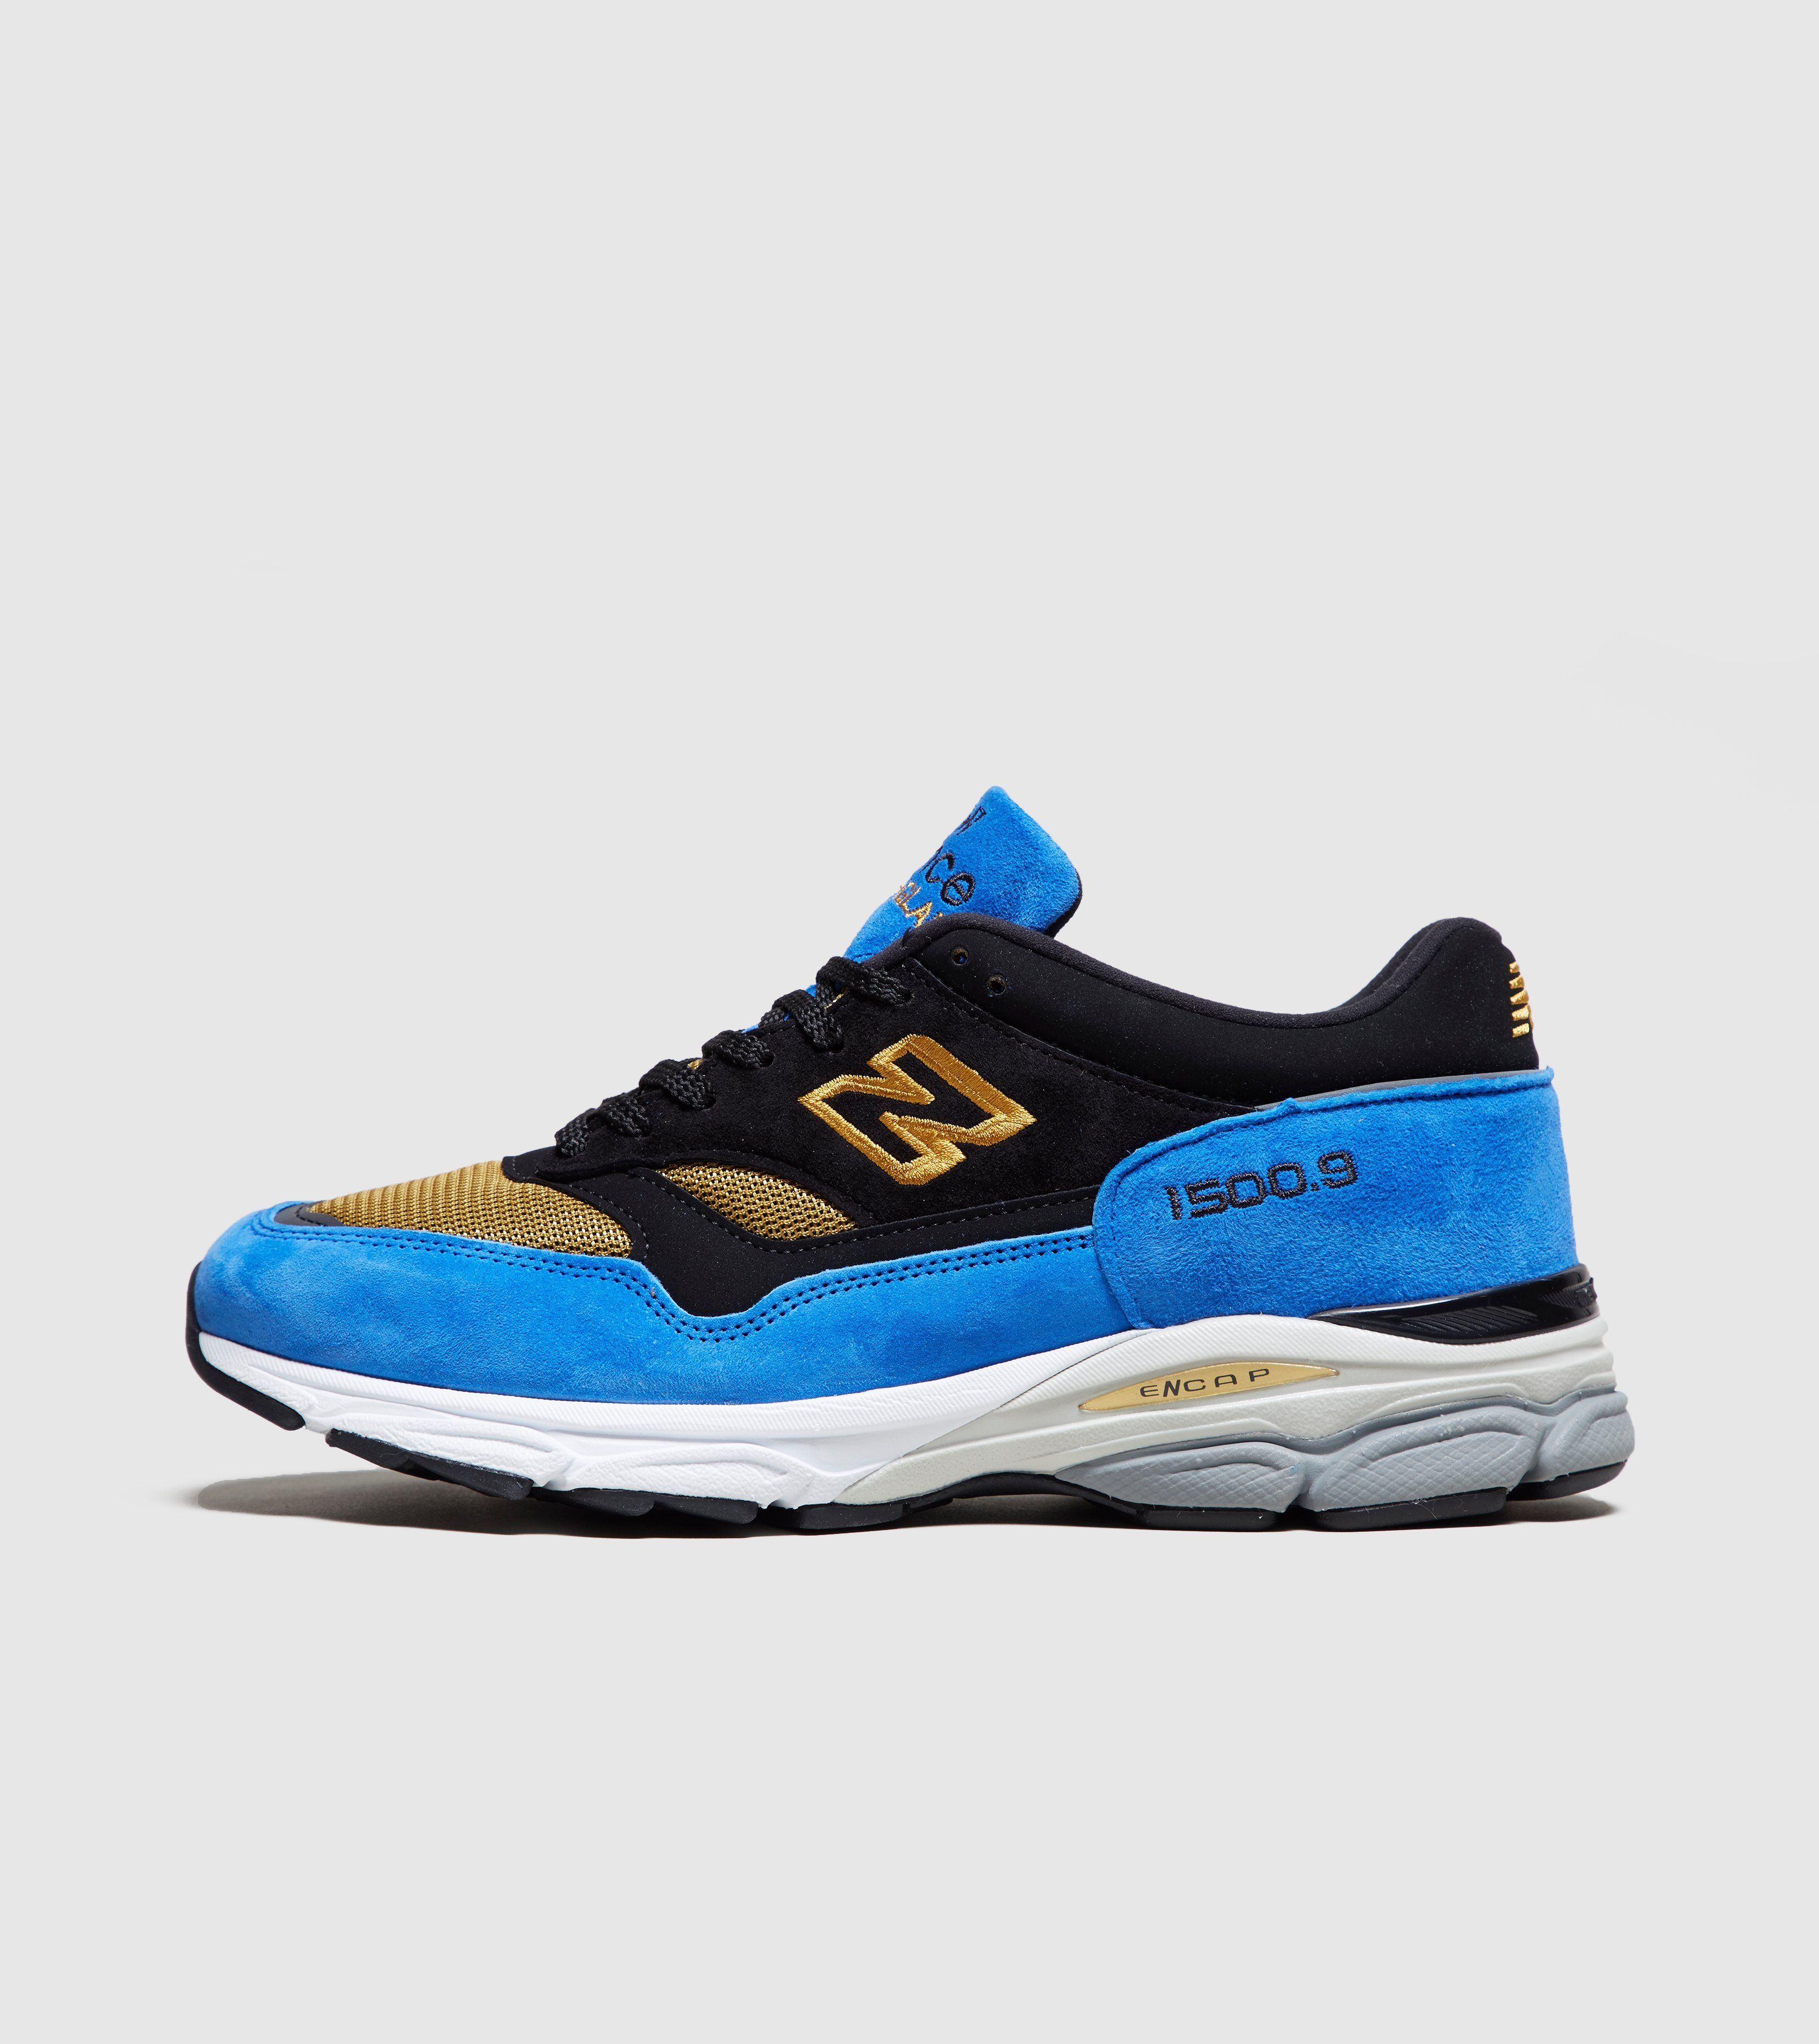 New Balance 1500.9 'Vodka & Caviar' - Made In England